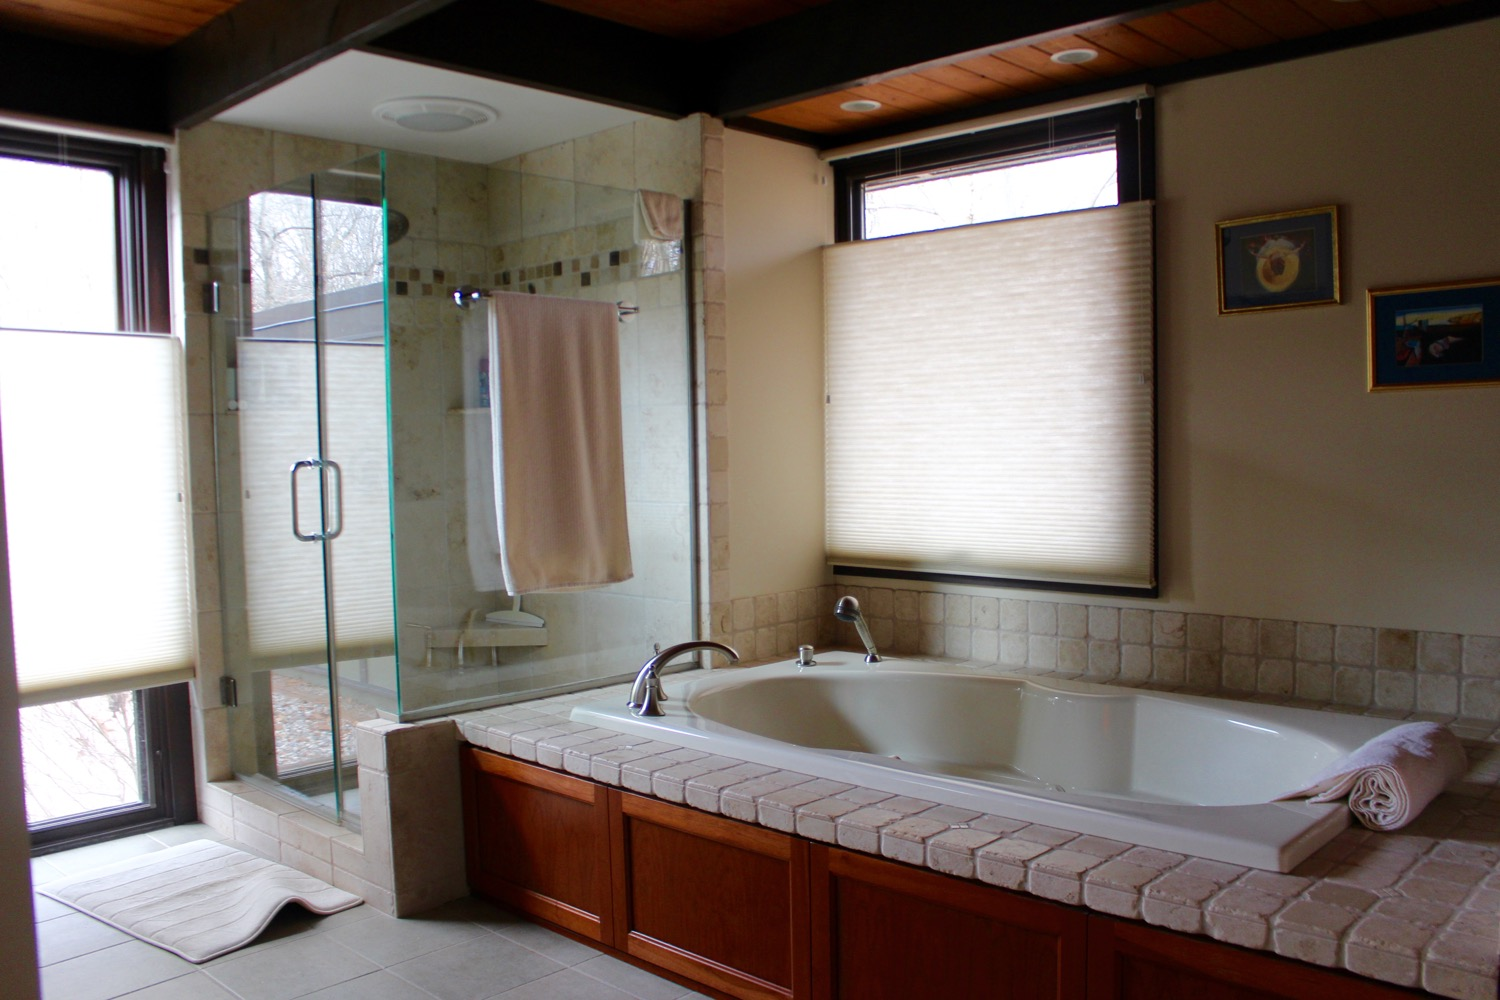 ENLARGED MASTER BATH WITH NEW 12 INCH FLOOR TILES, TILED SHOWER WITH GLASS WALLS, GARDEN TUB WITH TILE SURROUND